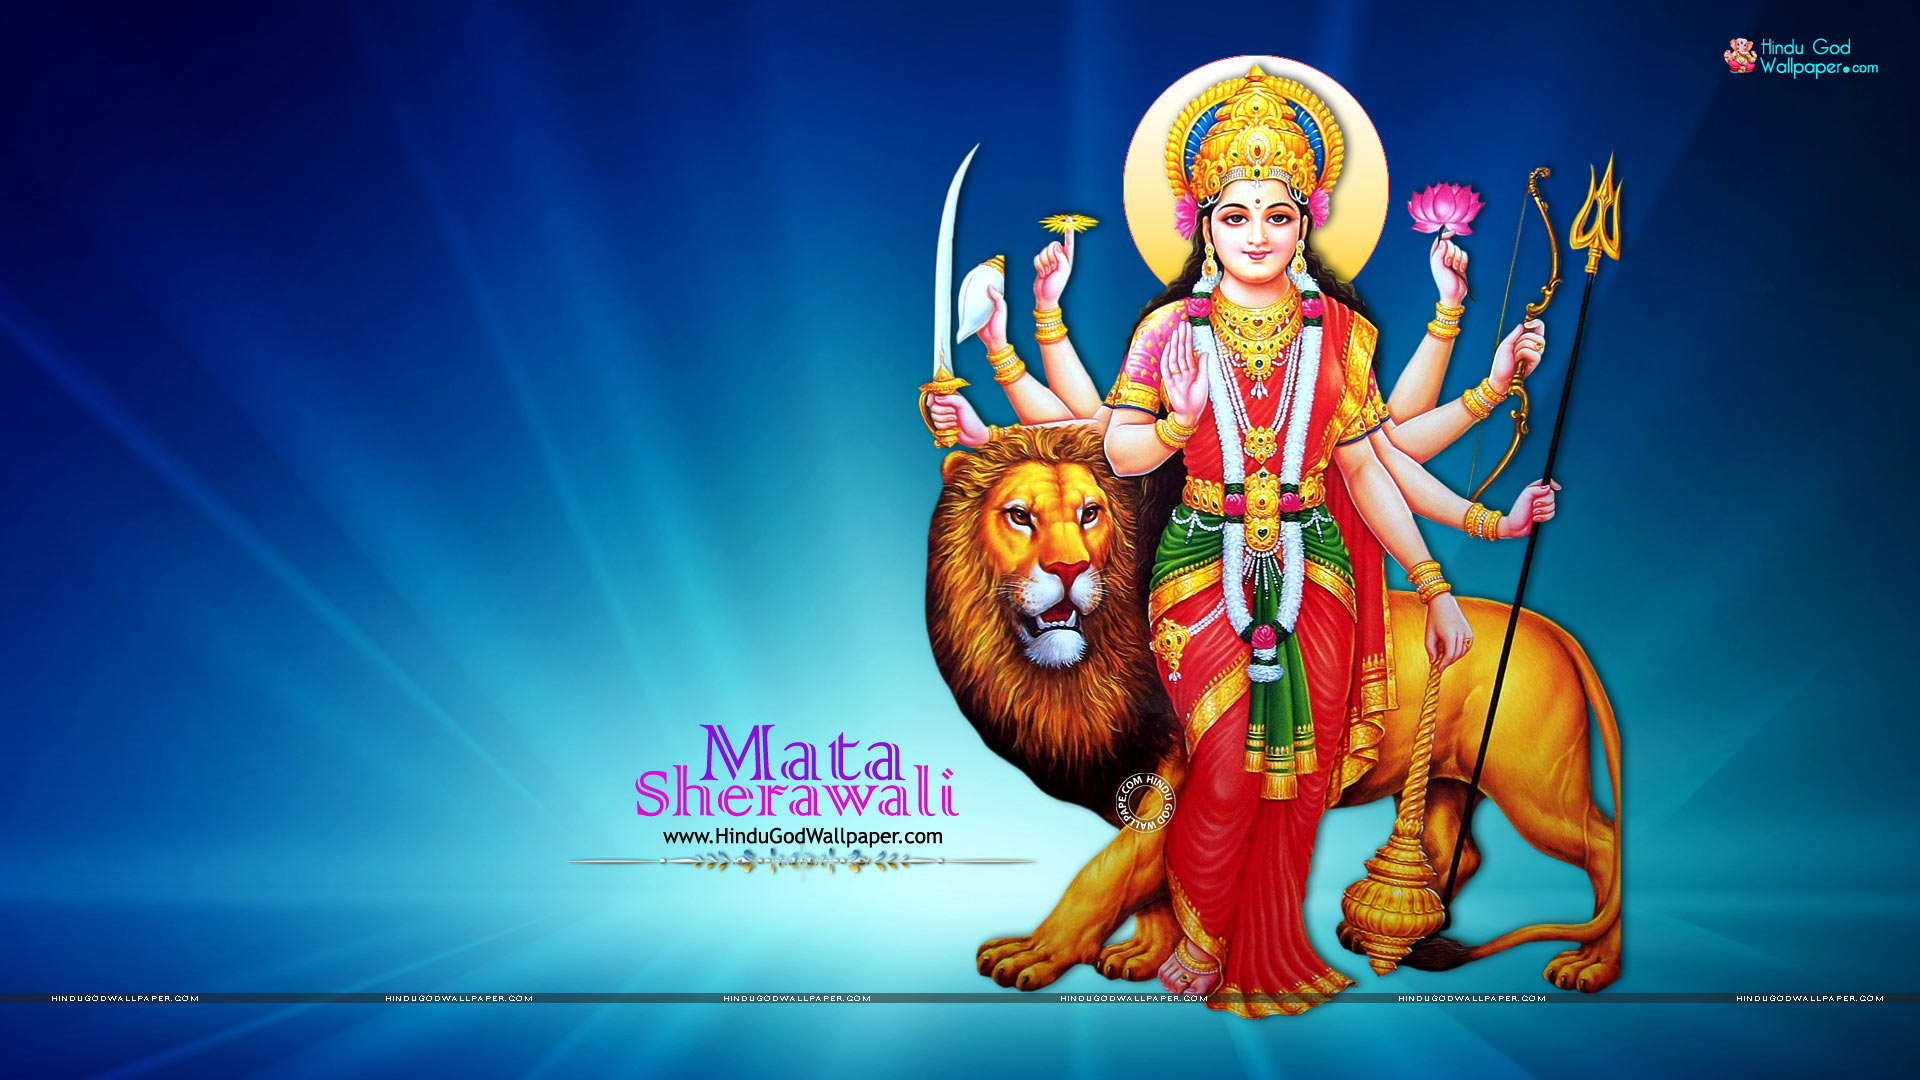 sherawali mata durga wallpaper hd full size download